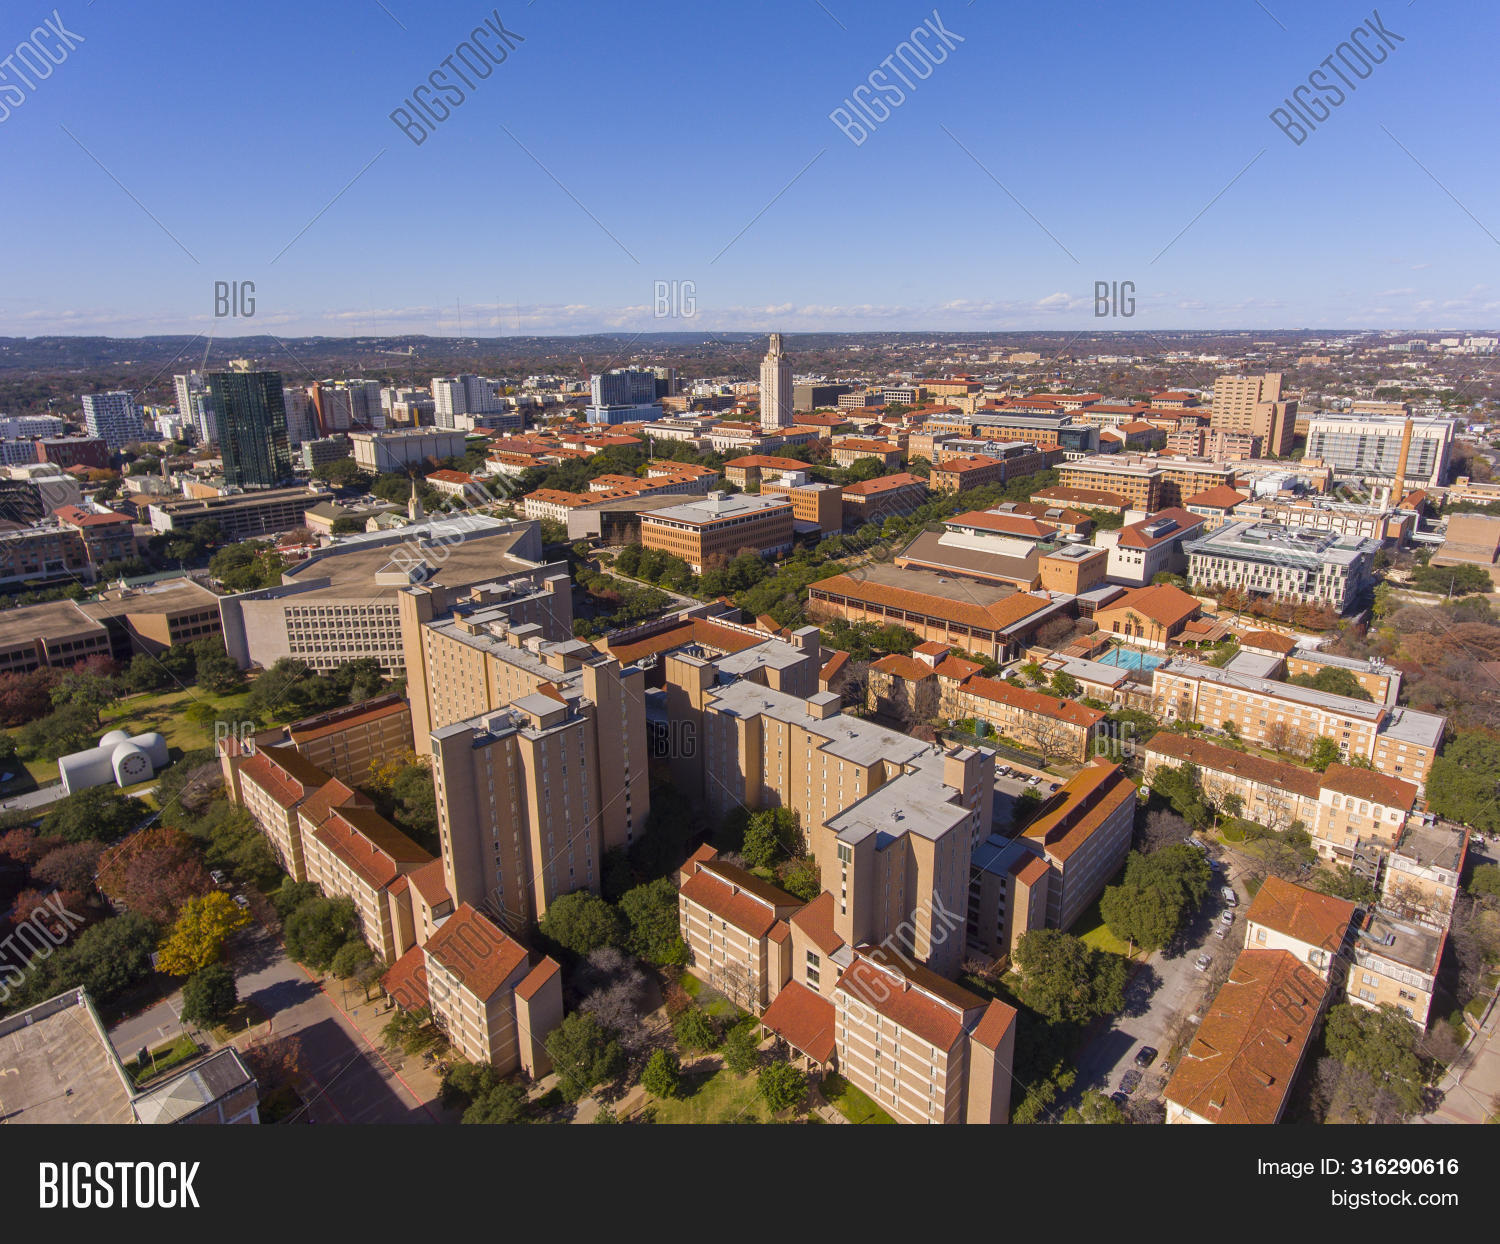 academic,aerial,america,american,architecture,austin,building,campus,capital,center,central,city,college,court,cultural,culture,downtown,drone,education,graduate,hall,helicopter,historic,historical,history,house,institute,landmark,landscape,main,modern,new,research,school,skyline,states,structure,texas,tour,tourism,tourist,tower,town,tradition,travel,united,university,usa,view,world